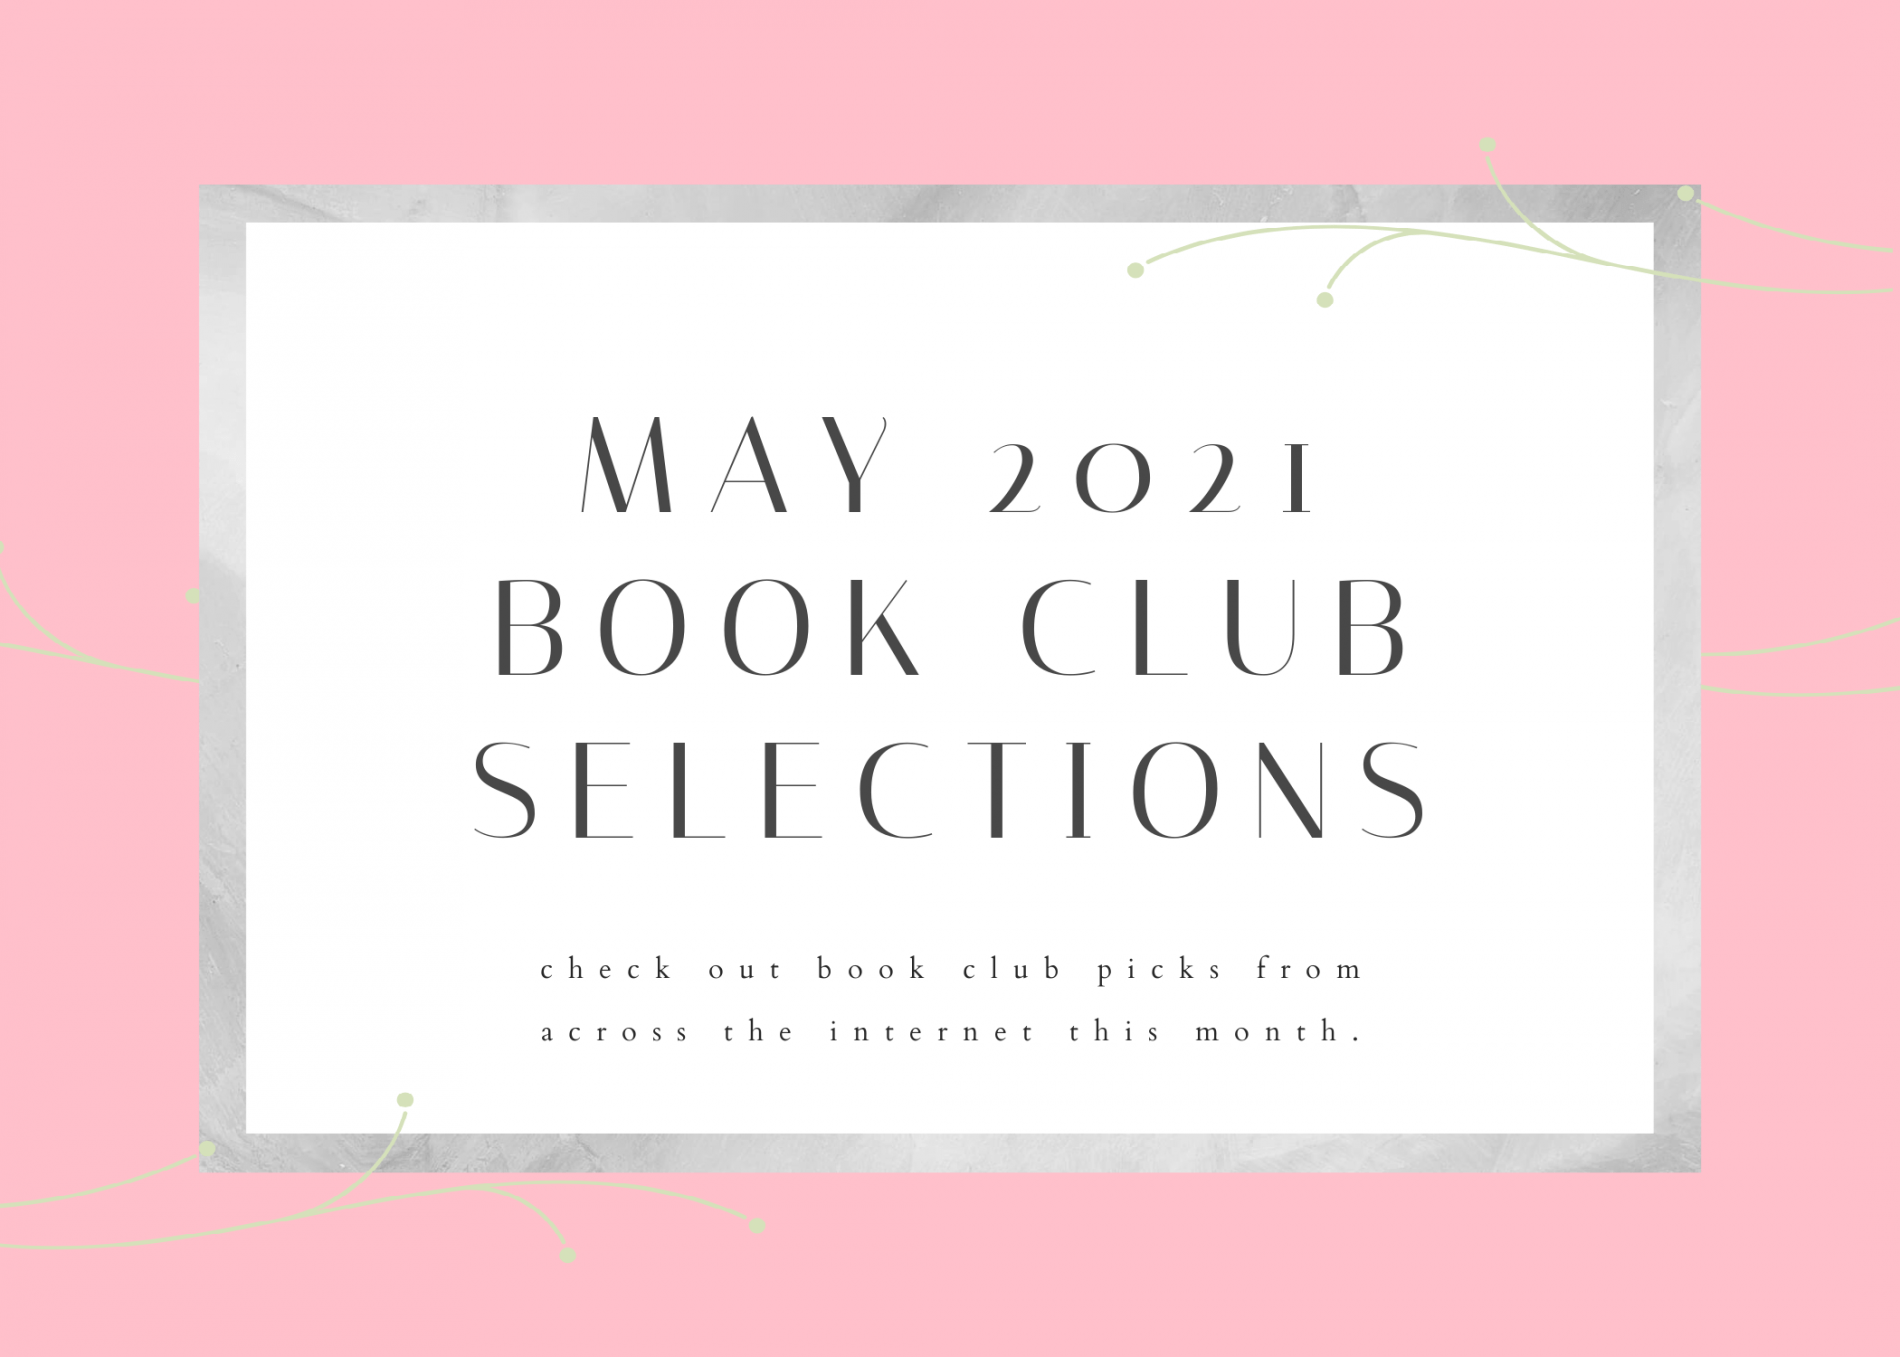 May 2021 Book Club Selections